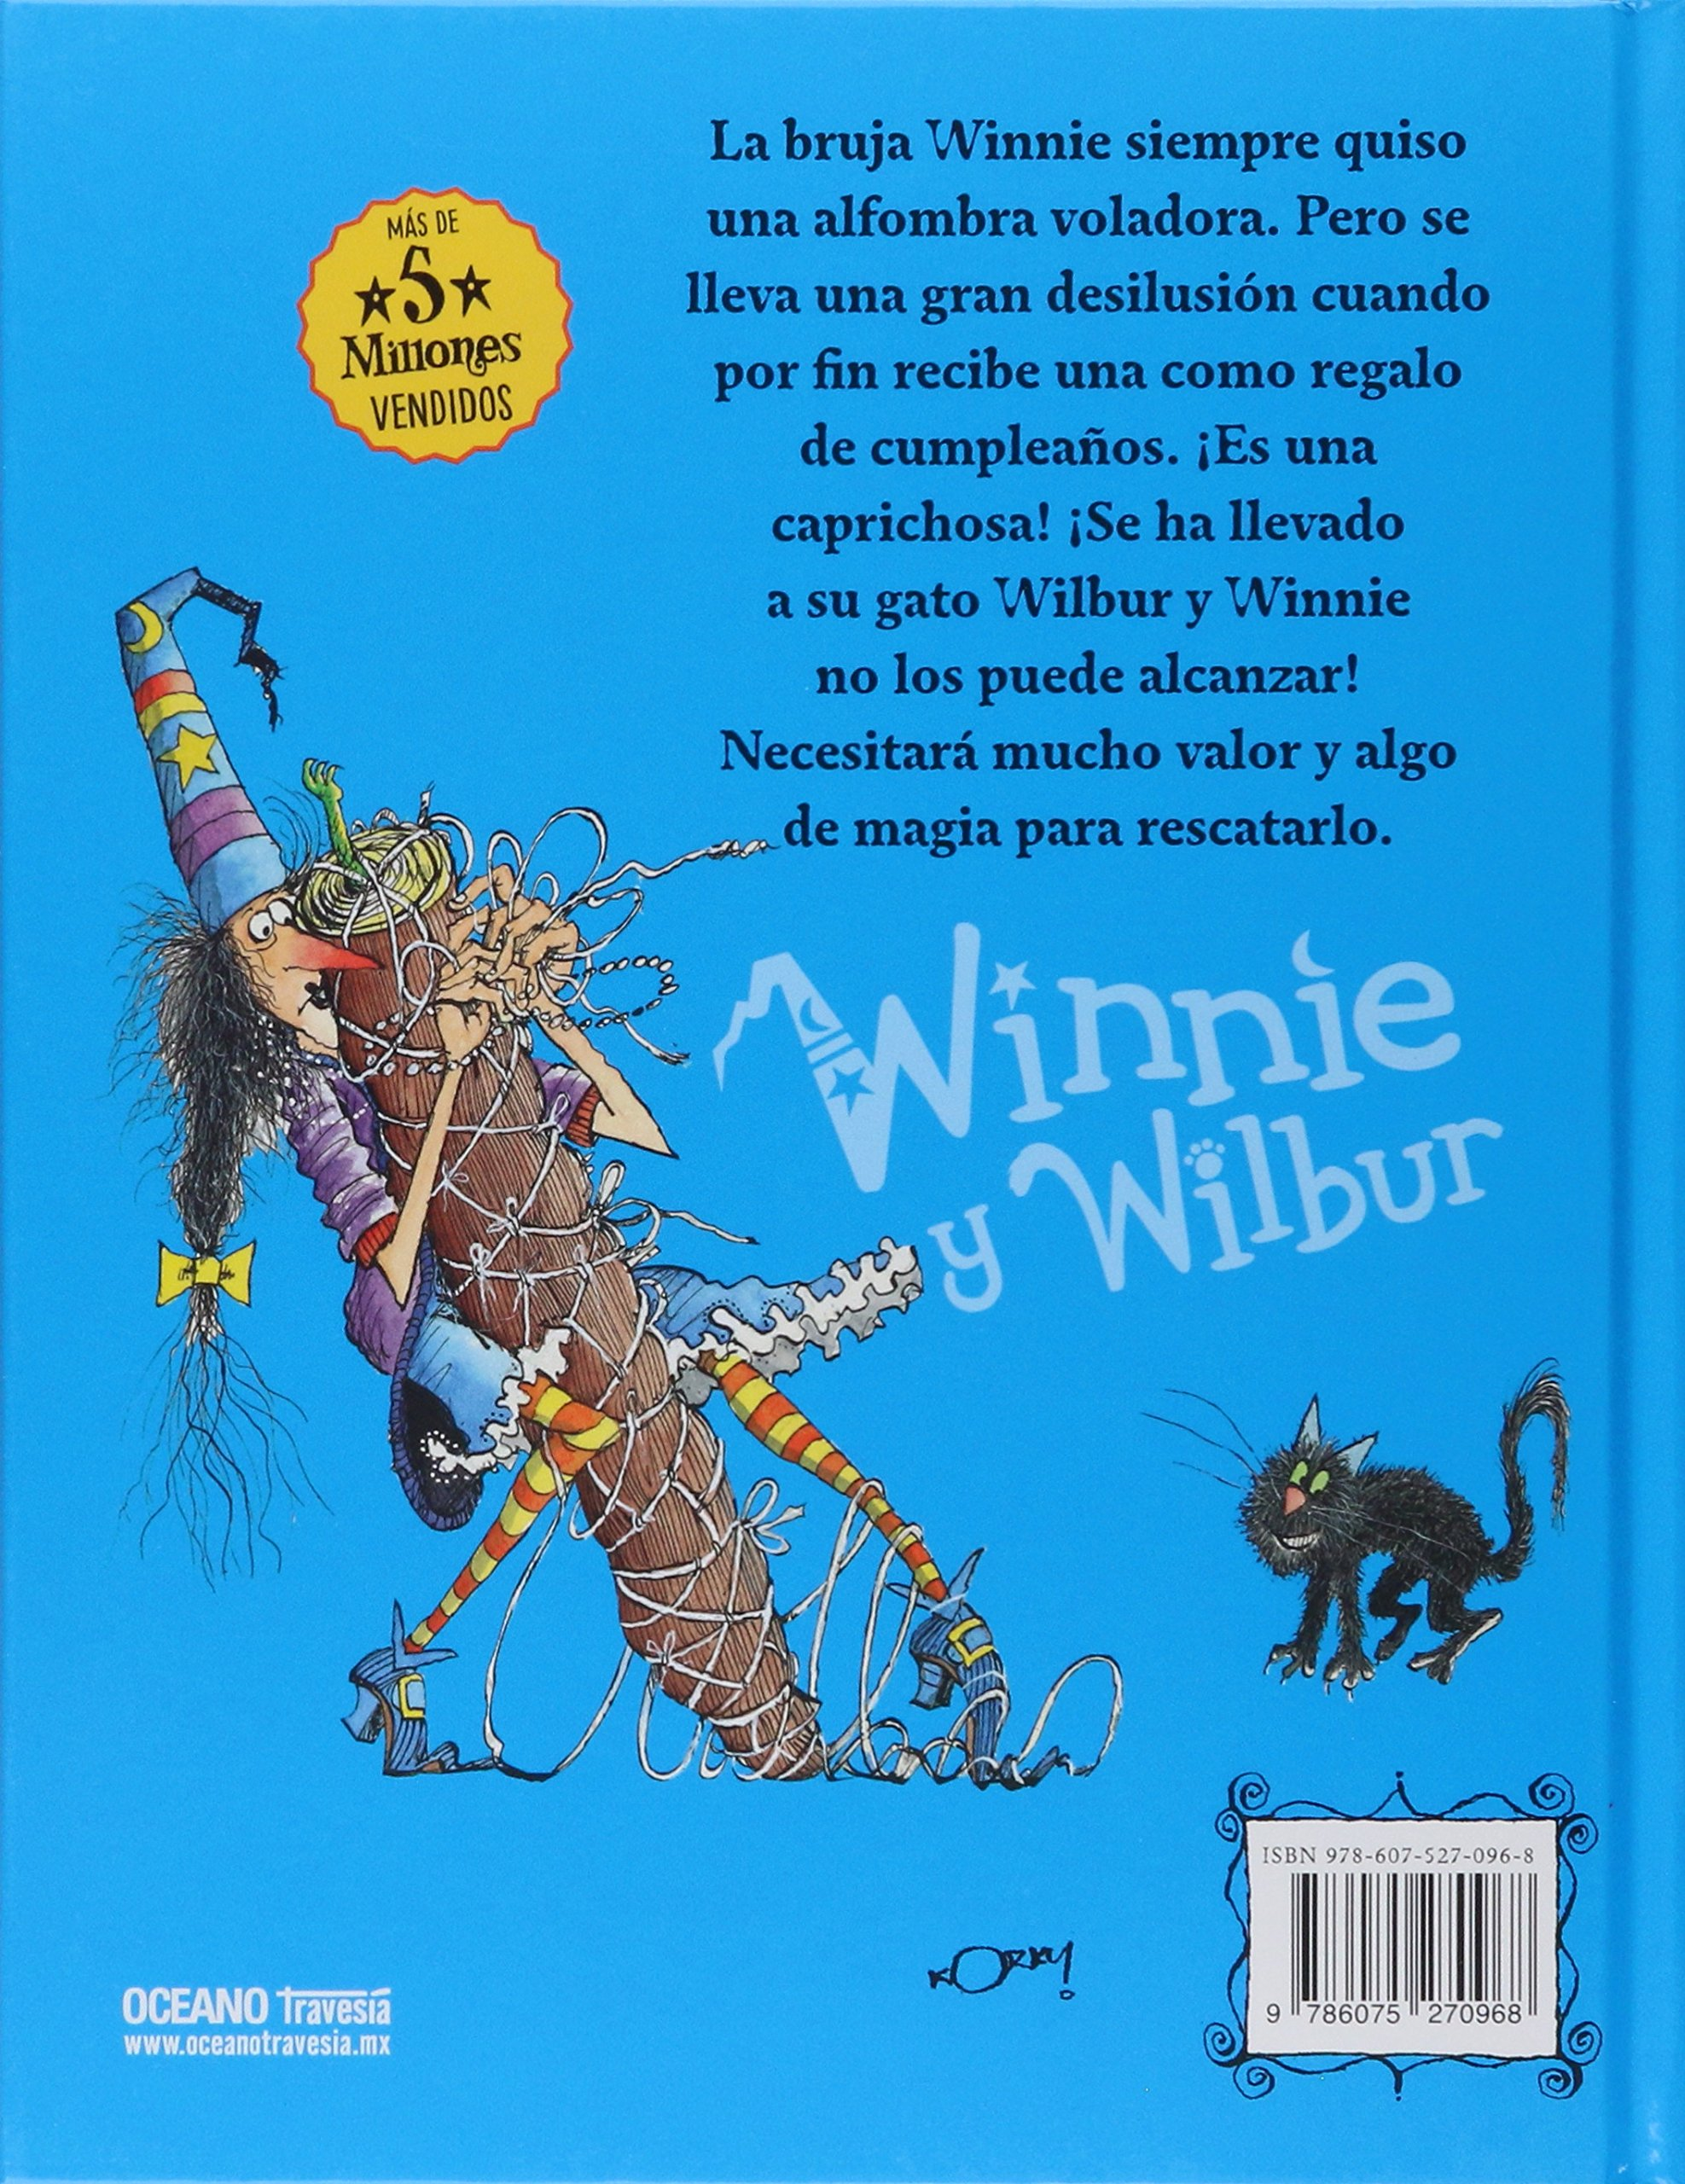 La alfombra voladora / Winnies Flying Carpet (Winnie the Witch) (Spanish Edition): Valerie Thomas, Korky Paul: 9786075270968: Amazon.com: Books